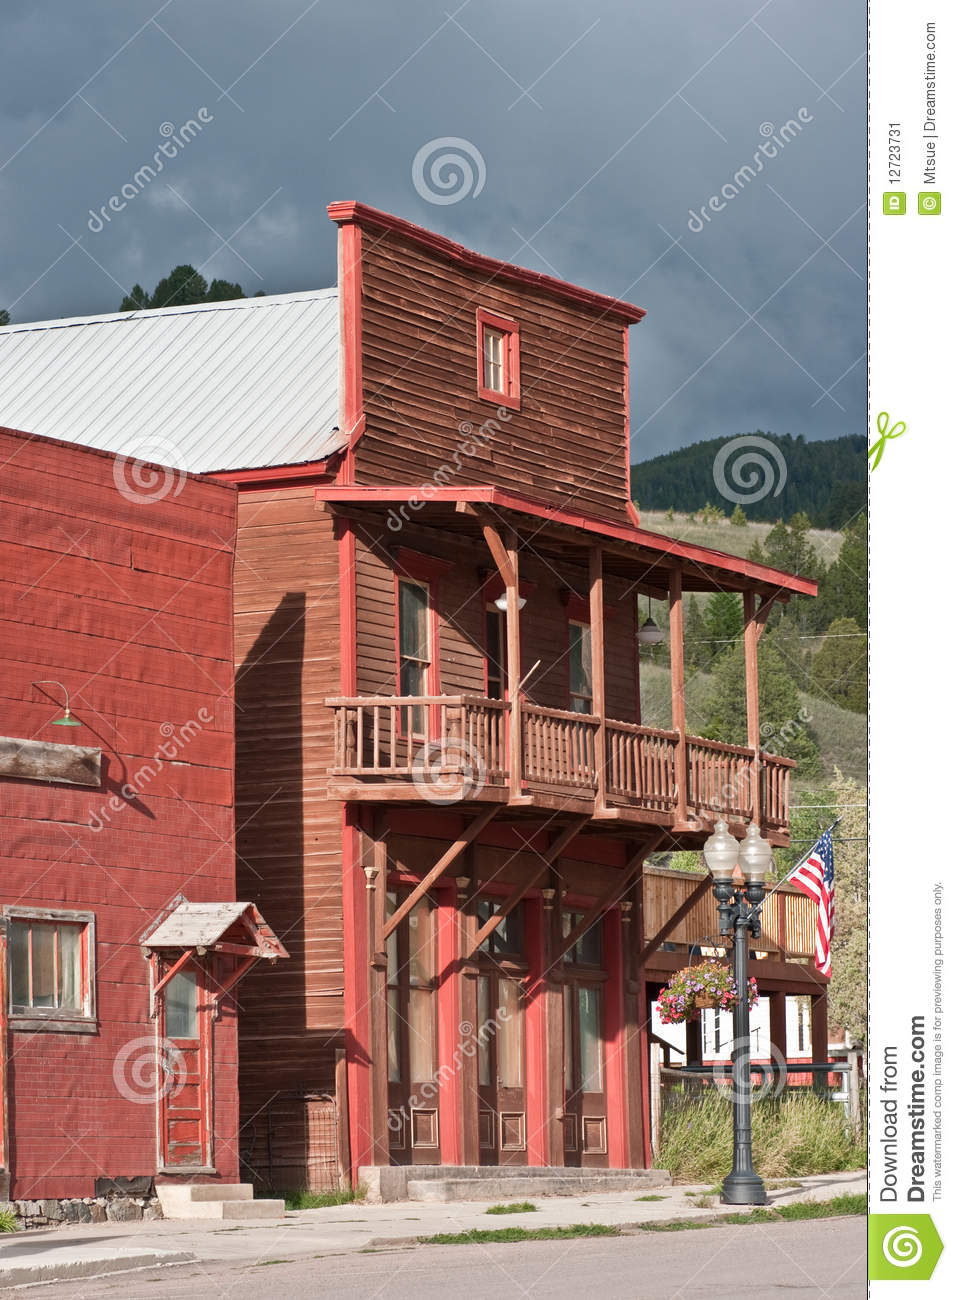 Old West False Front Buildings http://www.dreamstime.com/stock-image-false-fronted-building-image12723731